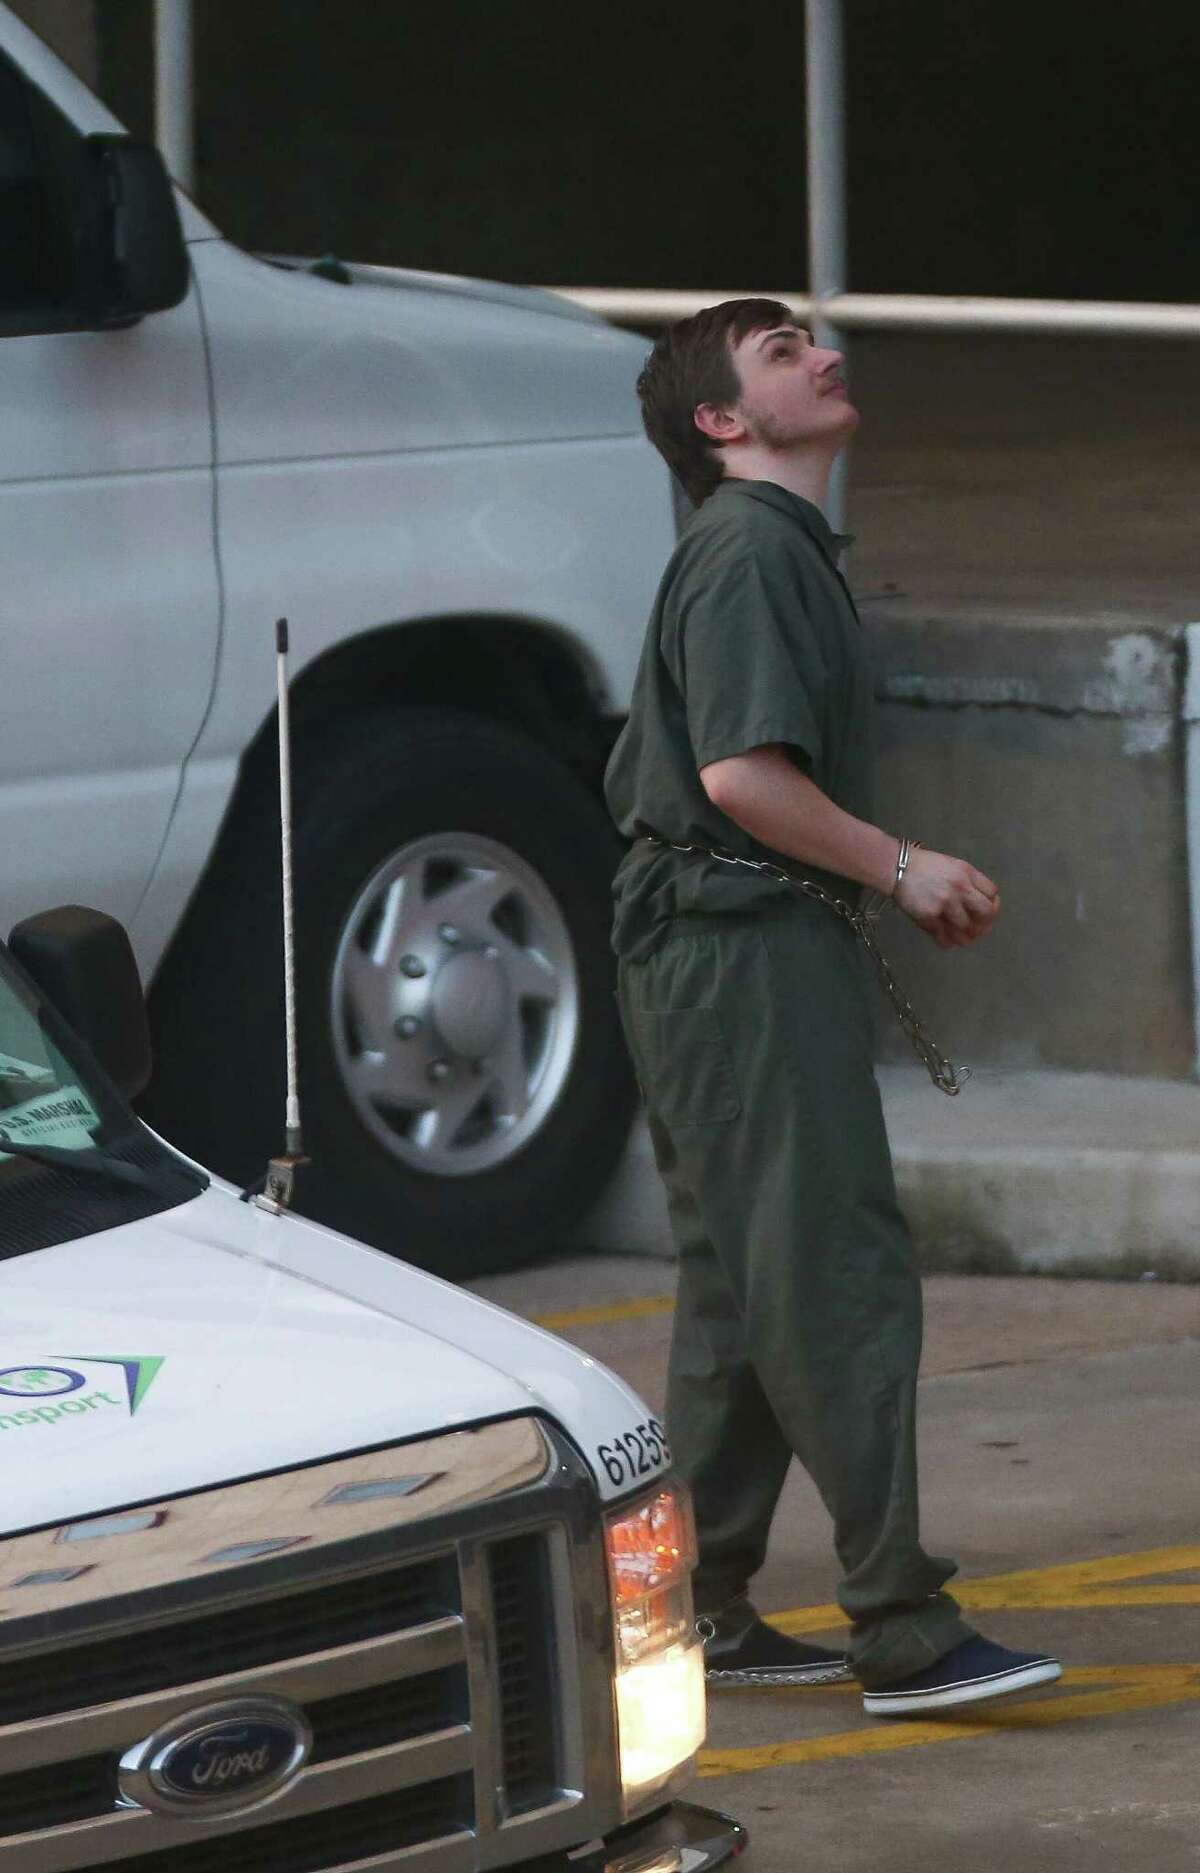 Andrew Cecil Schneck, who is being accused of trying to bomb the statue of a confederate officer in Hermann Park in August, arrives for the preliminary examination and detention hearing before U.S. Magistrate Judge Mary Milloy outside the United States District Courthouse Tuesday, Sept. 19, 2017, in Houston. ( Godofredo A. Vasquez / Houston Chronicle )